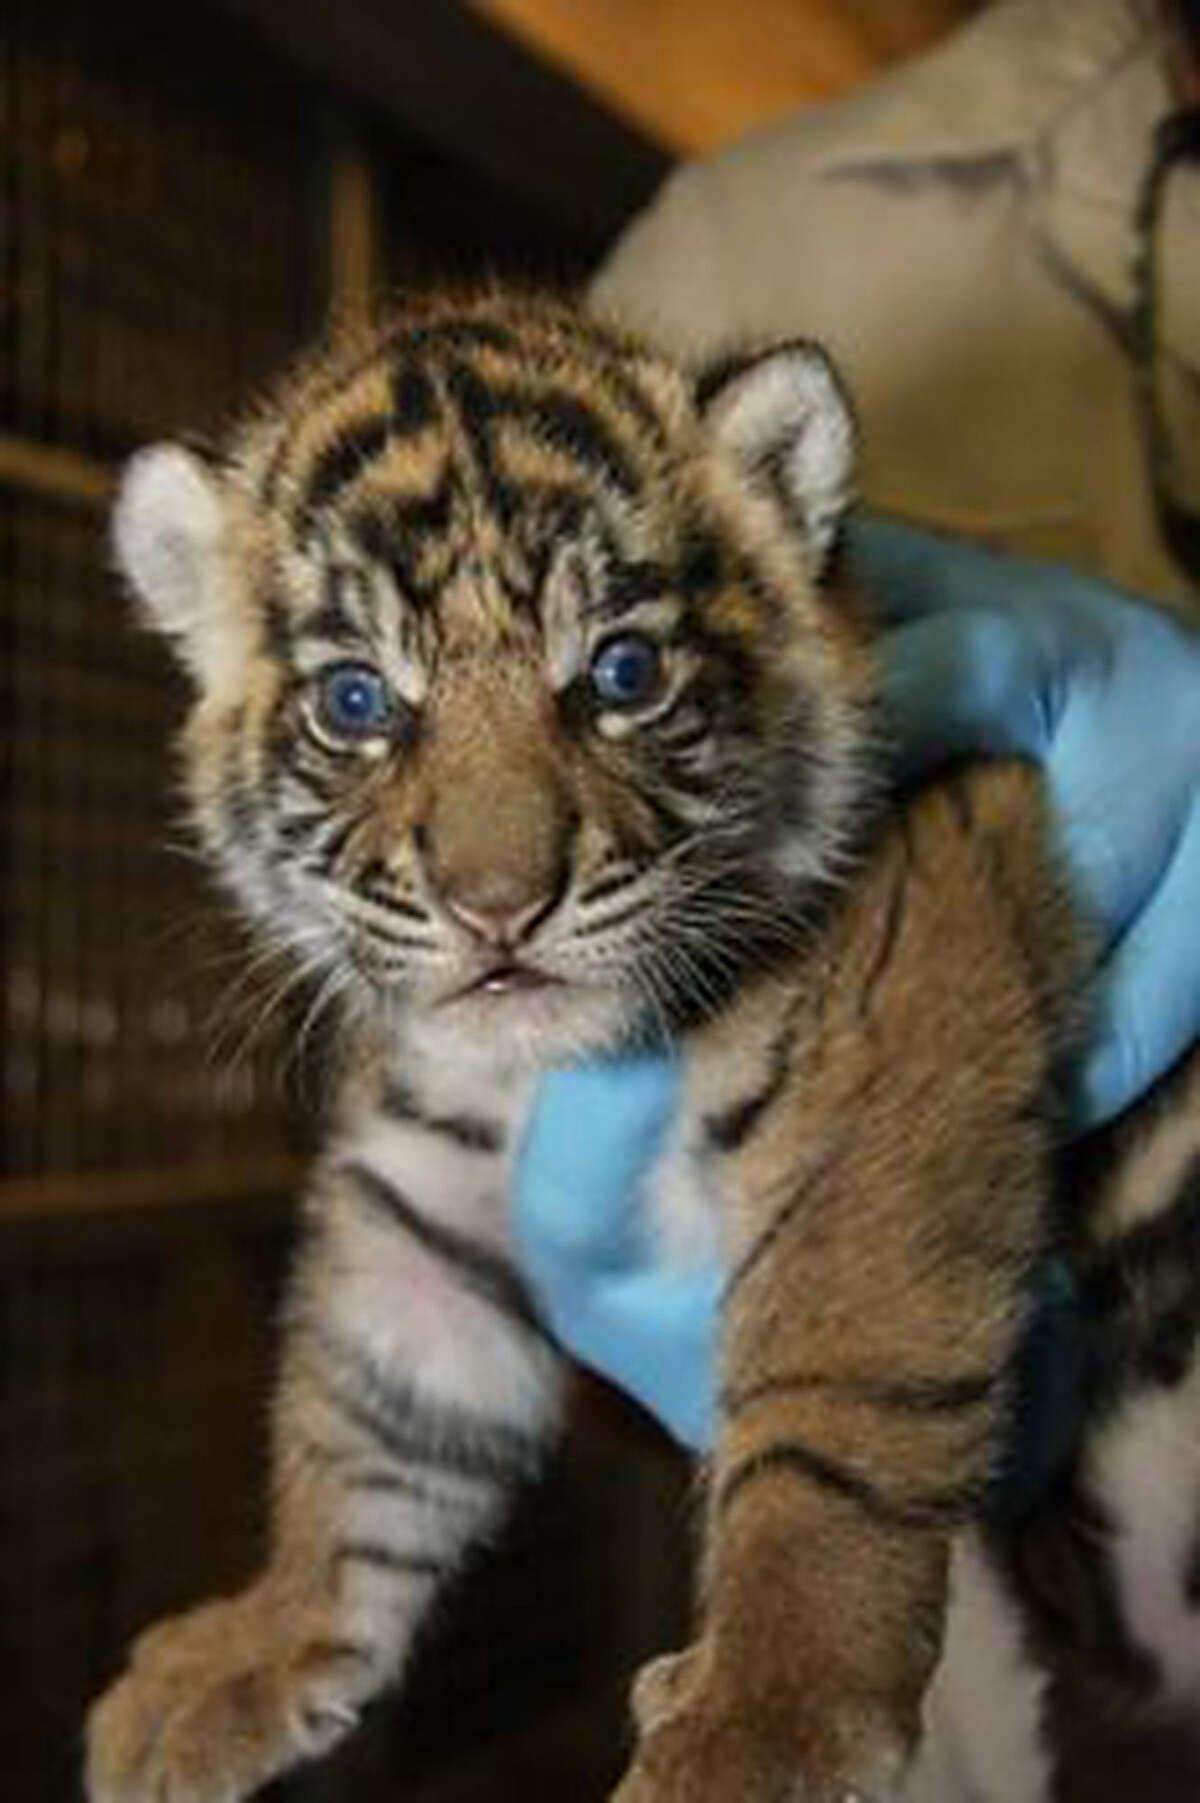 Two Sumatran tiger cubs, born at the San Antonio Zoo early last month, appear to be vocalizing their enthusiasm (top) about their Facebook debut - though they do not yet have names. One of the cubs (above) receives her first medical checkup at the zoo.